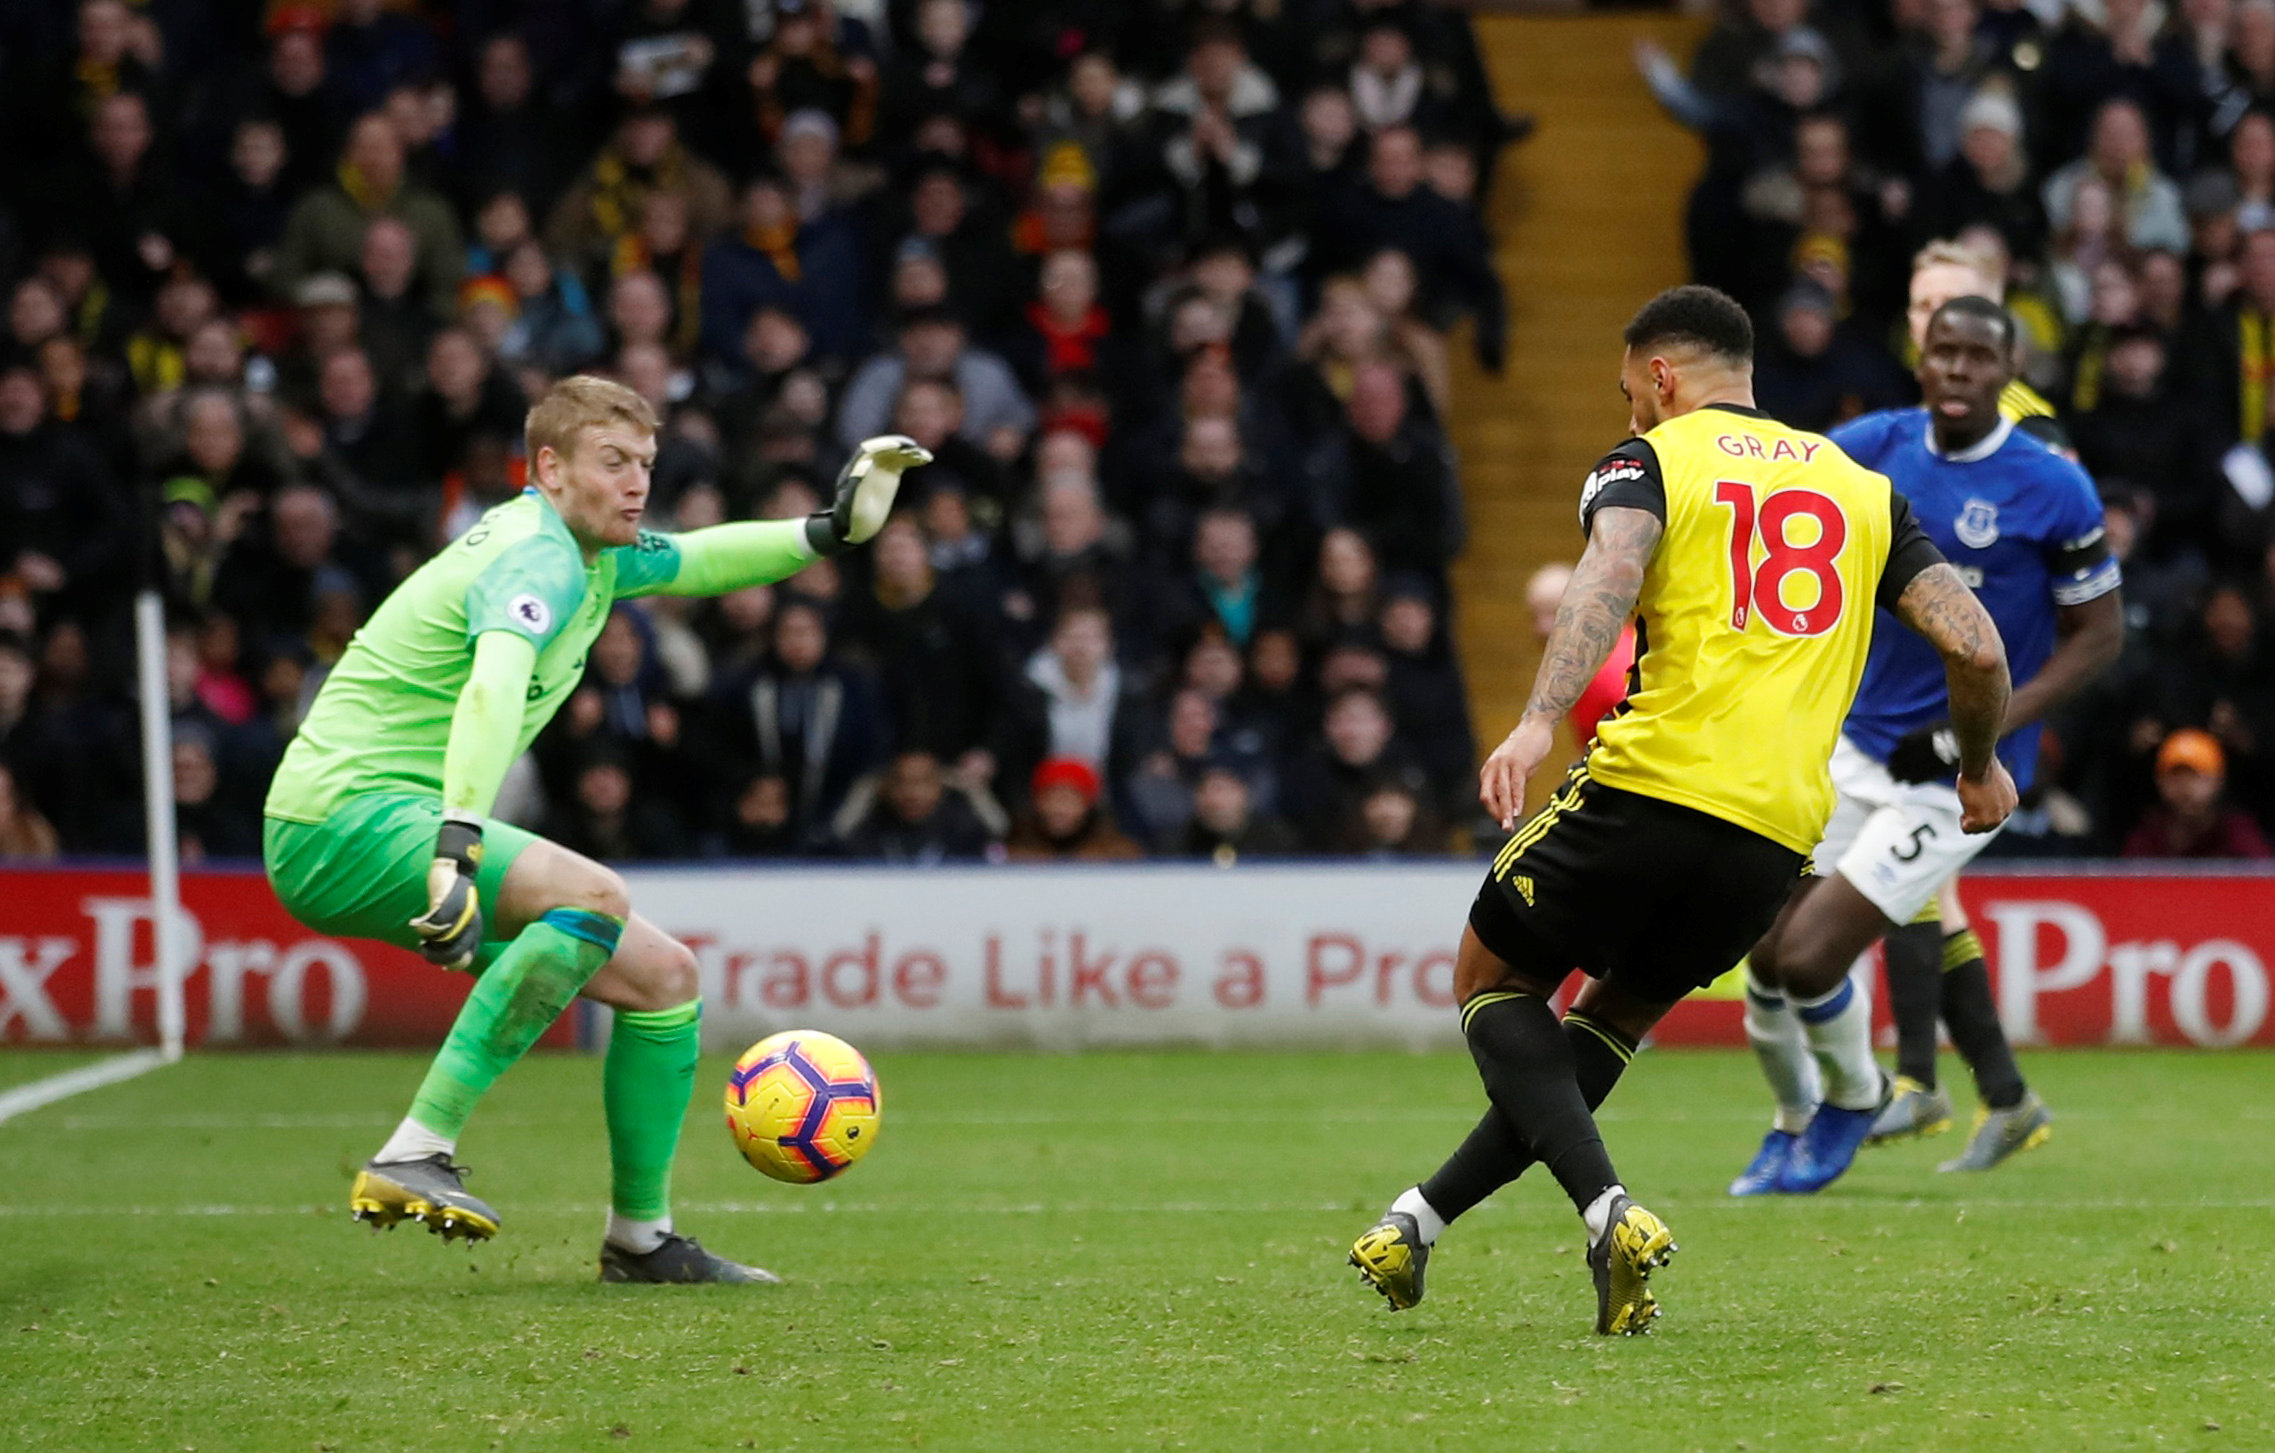 Andre Gray scores the winner. Picture: Action Images